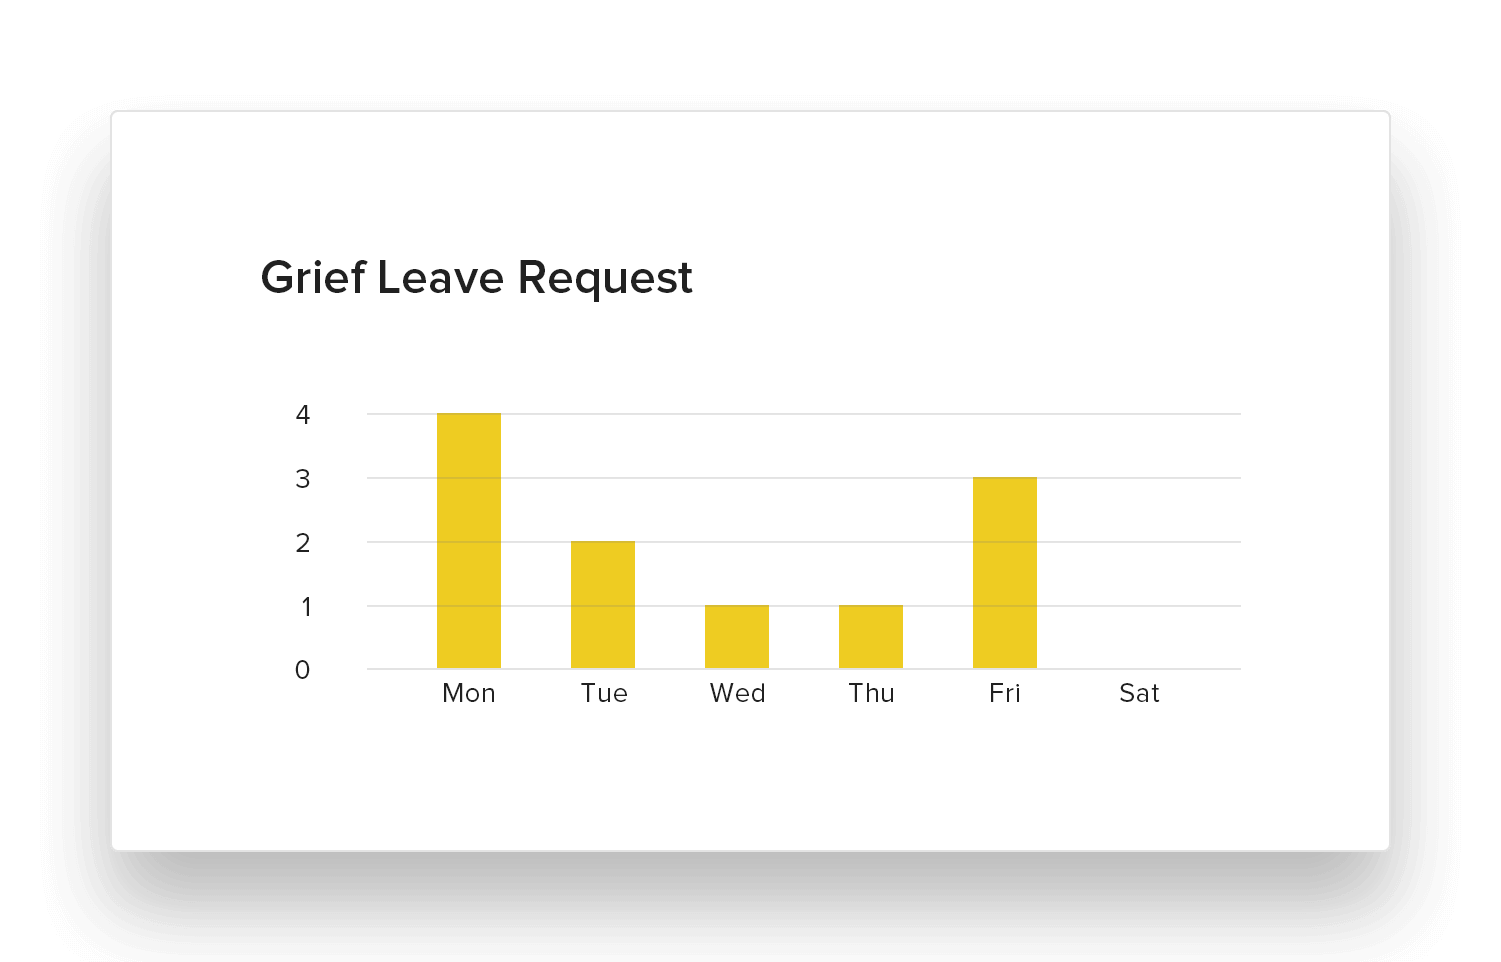 monday, grief leave, employee data